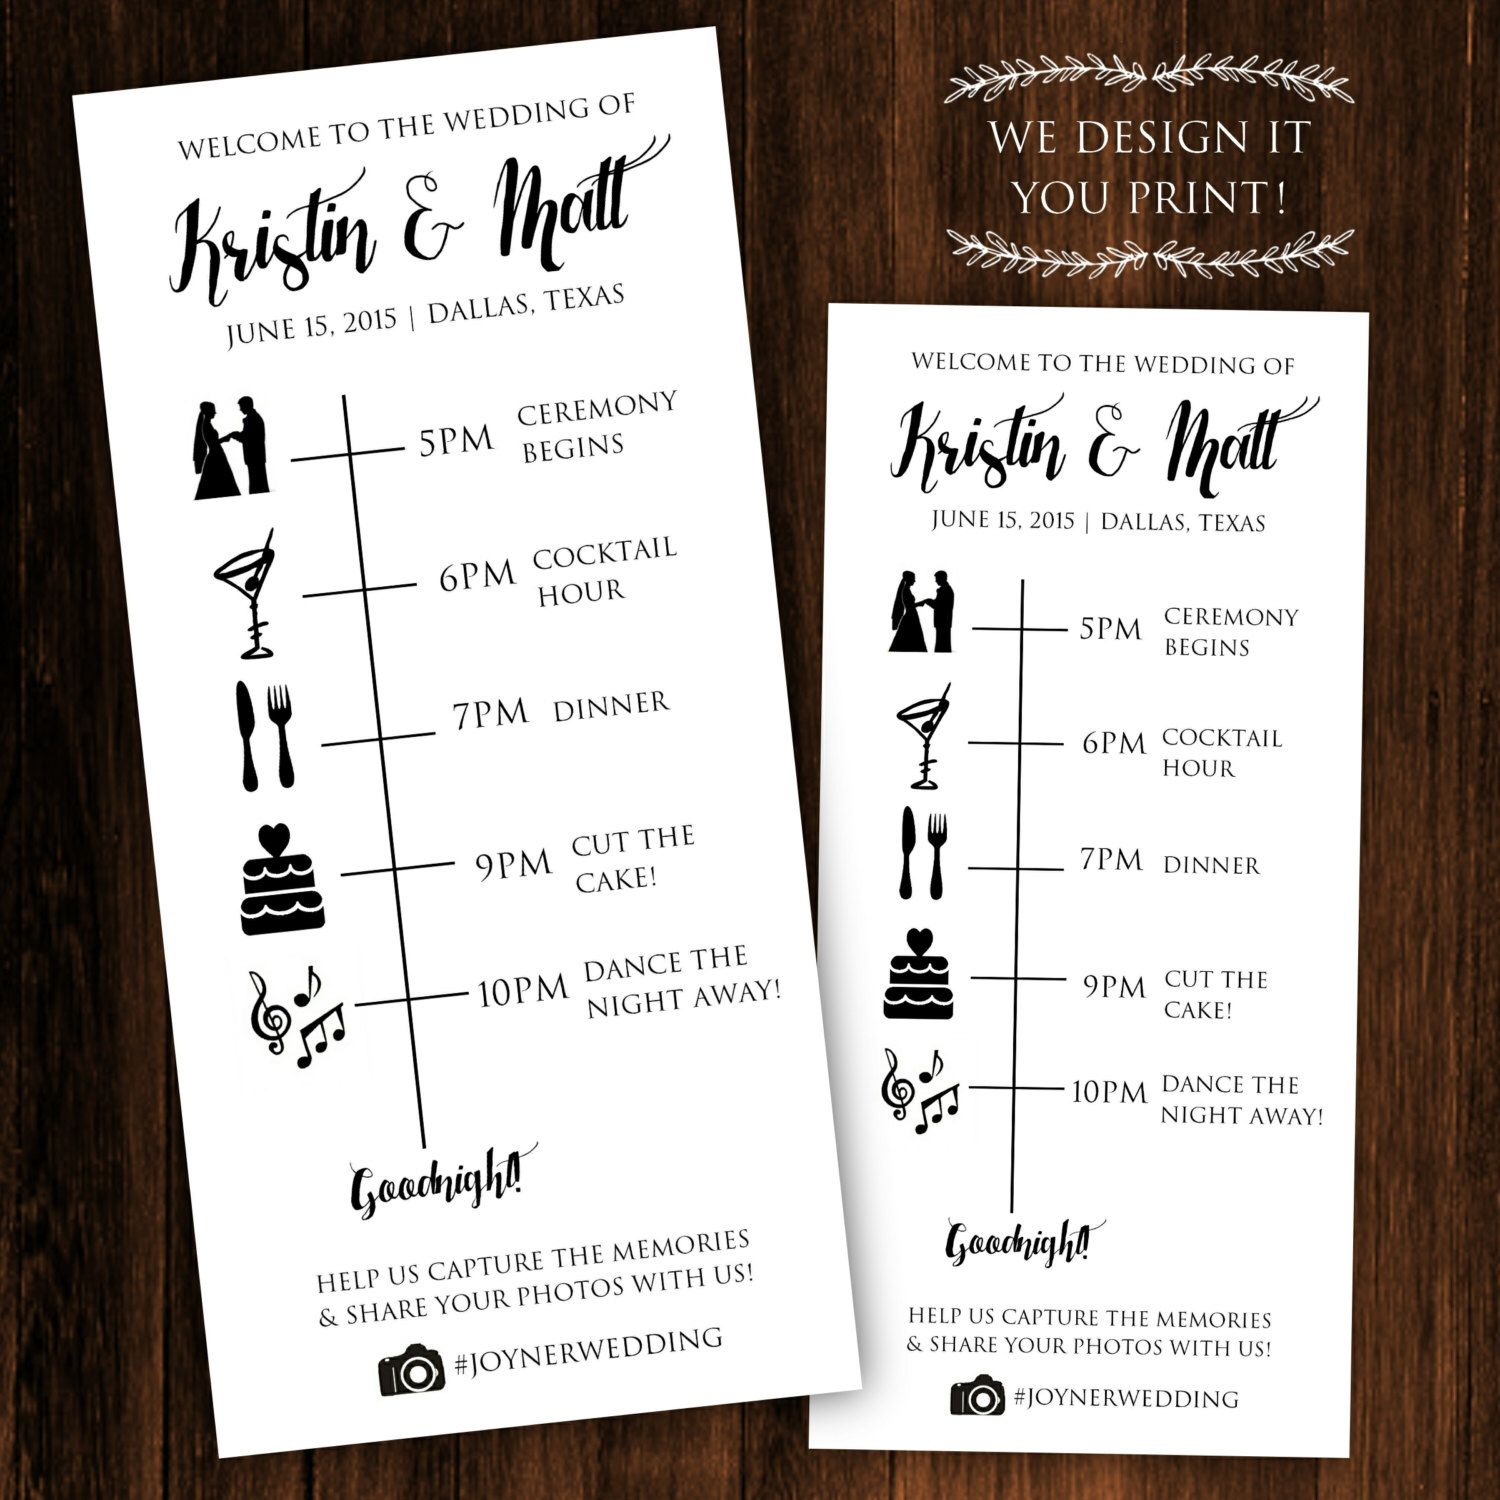 Printable wedding timeline printable wedding itinerary wedding printable wedding timeline printable wedding itinerary wedding itinerary template wedding program by classyprintsonline junglespirit Images